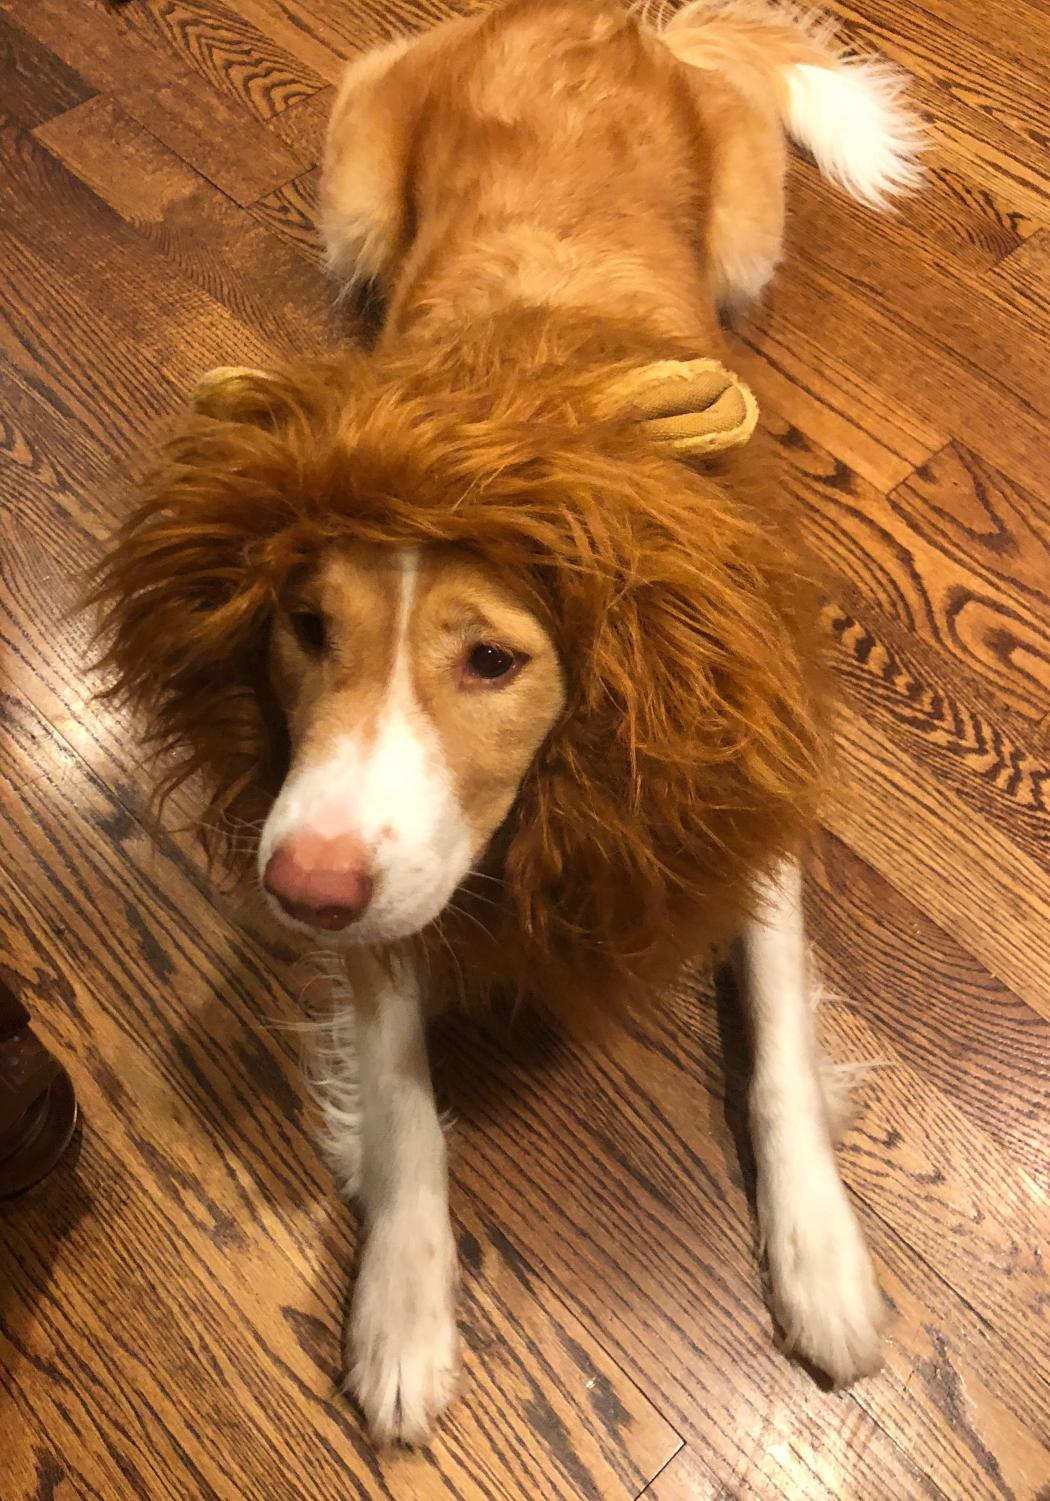 Dog%E2%80%99s+Name%3A+Willow%0A%E2%80%9CShe%E2%80%99s+dressed+up+as+a+lion+mane+on+her+head+because+we+thought+it+was+cute.+%5BWe+did+it+because+it+was%5D+marching+band+related.+Our+theme+this+year+has+to+do+with+courage+and+lions+and+we+thought+she%E2%80%99d+look+kind+of+cute+as+a+lion.%E2%80%9D+%0A-+Morgan+Rollins+%2720